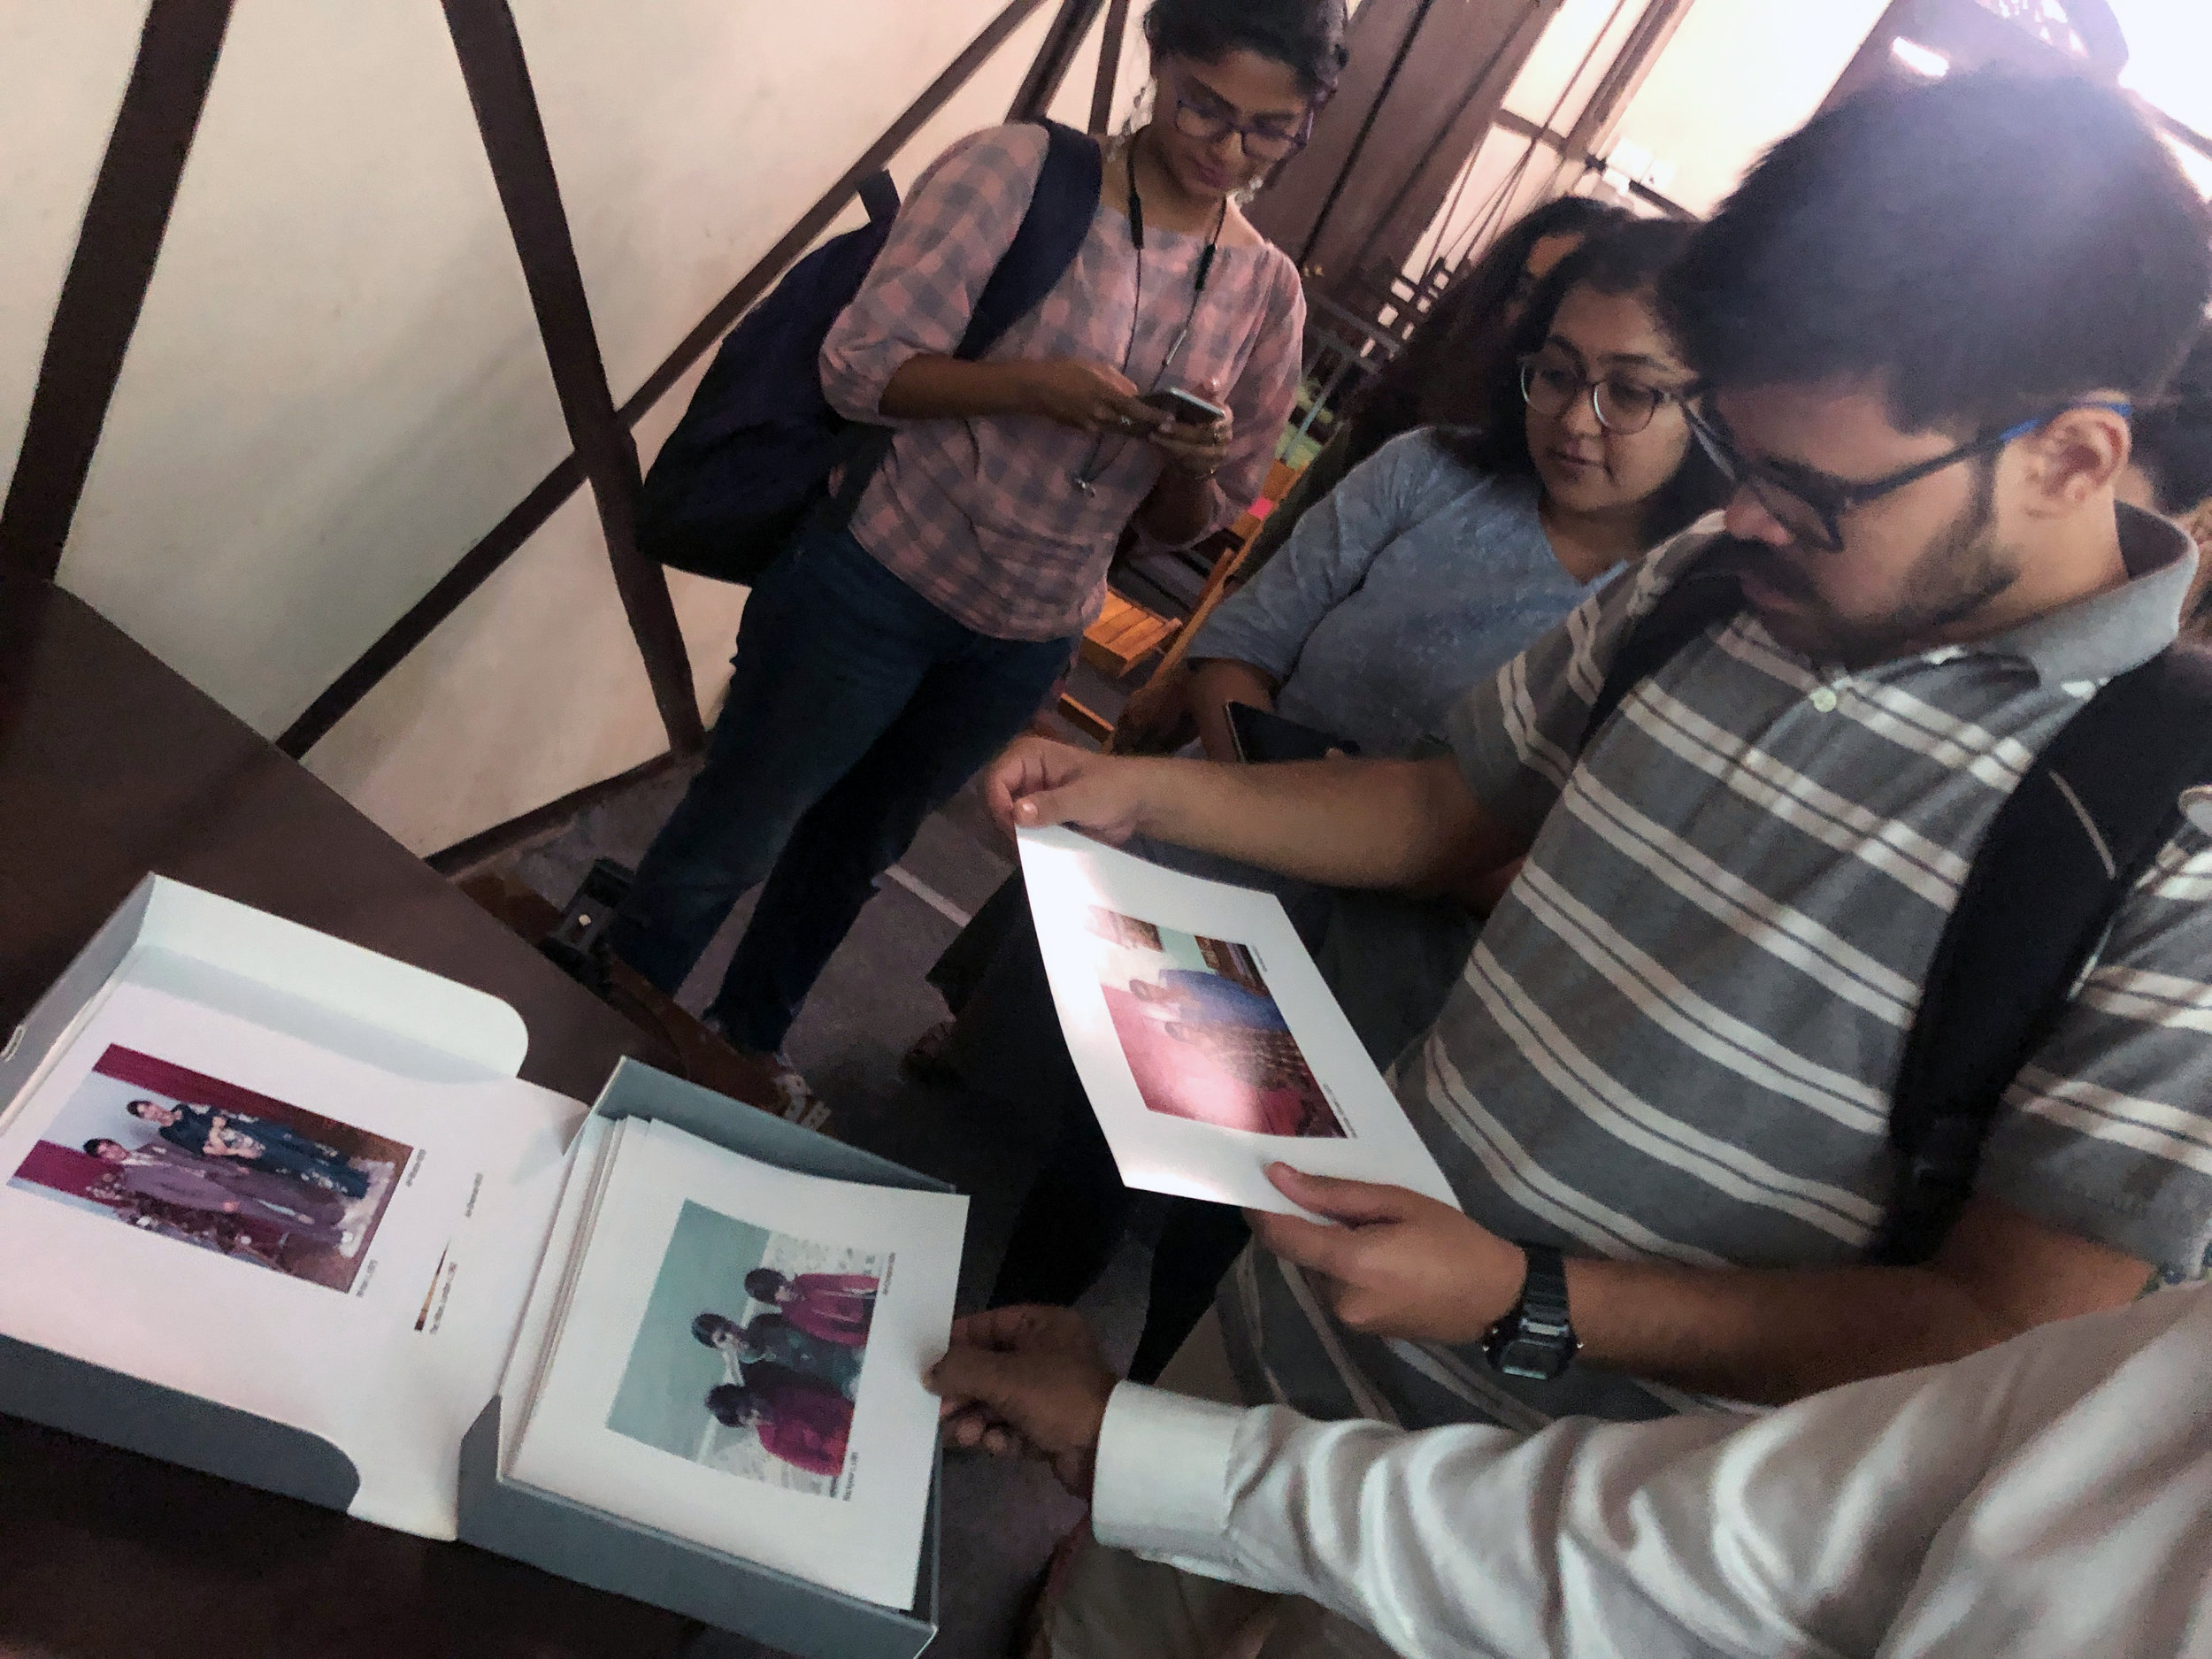 MUMBAI -  Great to have such an engaging crowd stop over to receive hospitality ask questions and browse the physical collection of images from the Apna Heritage Archive.